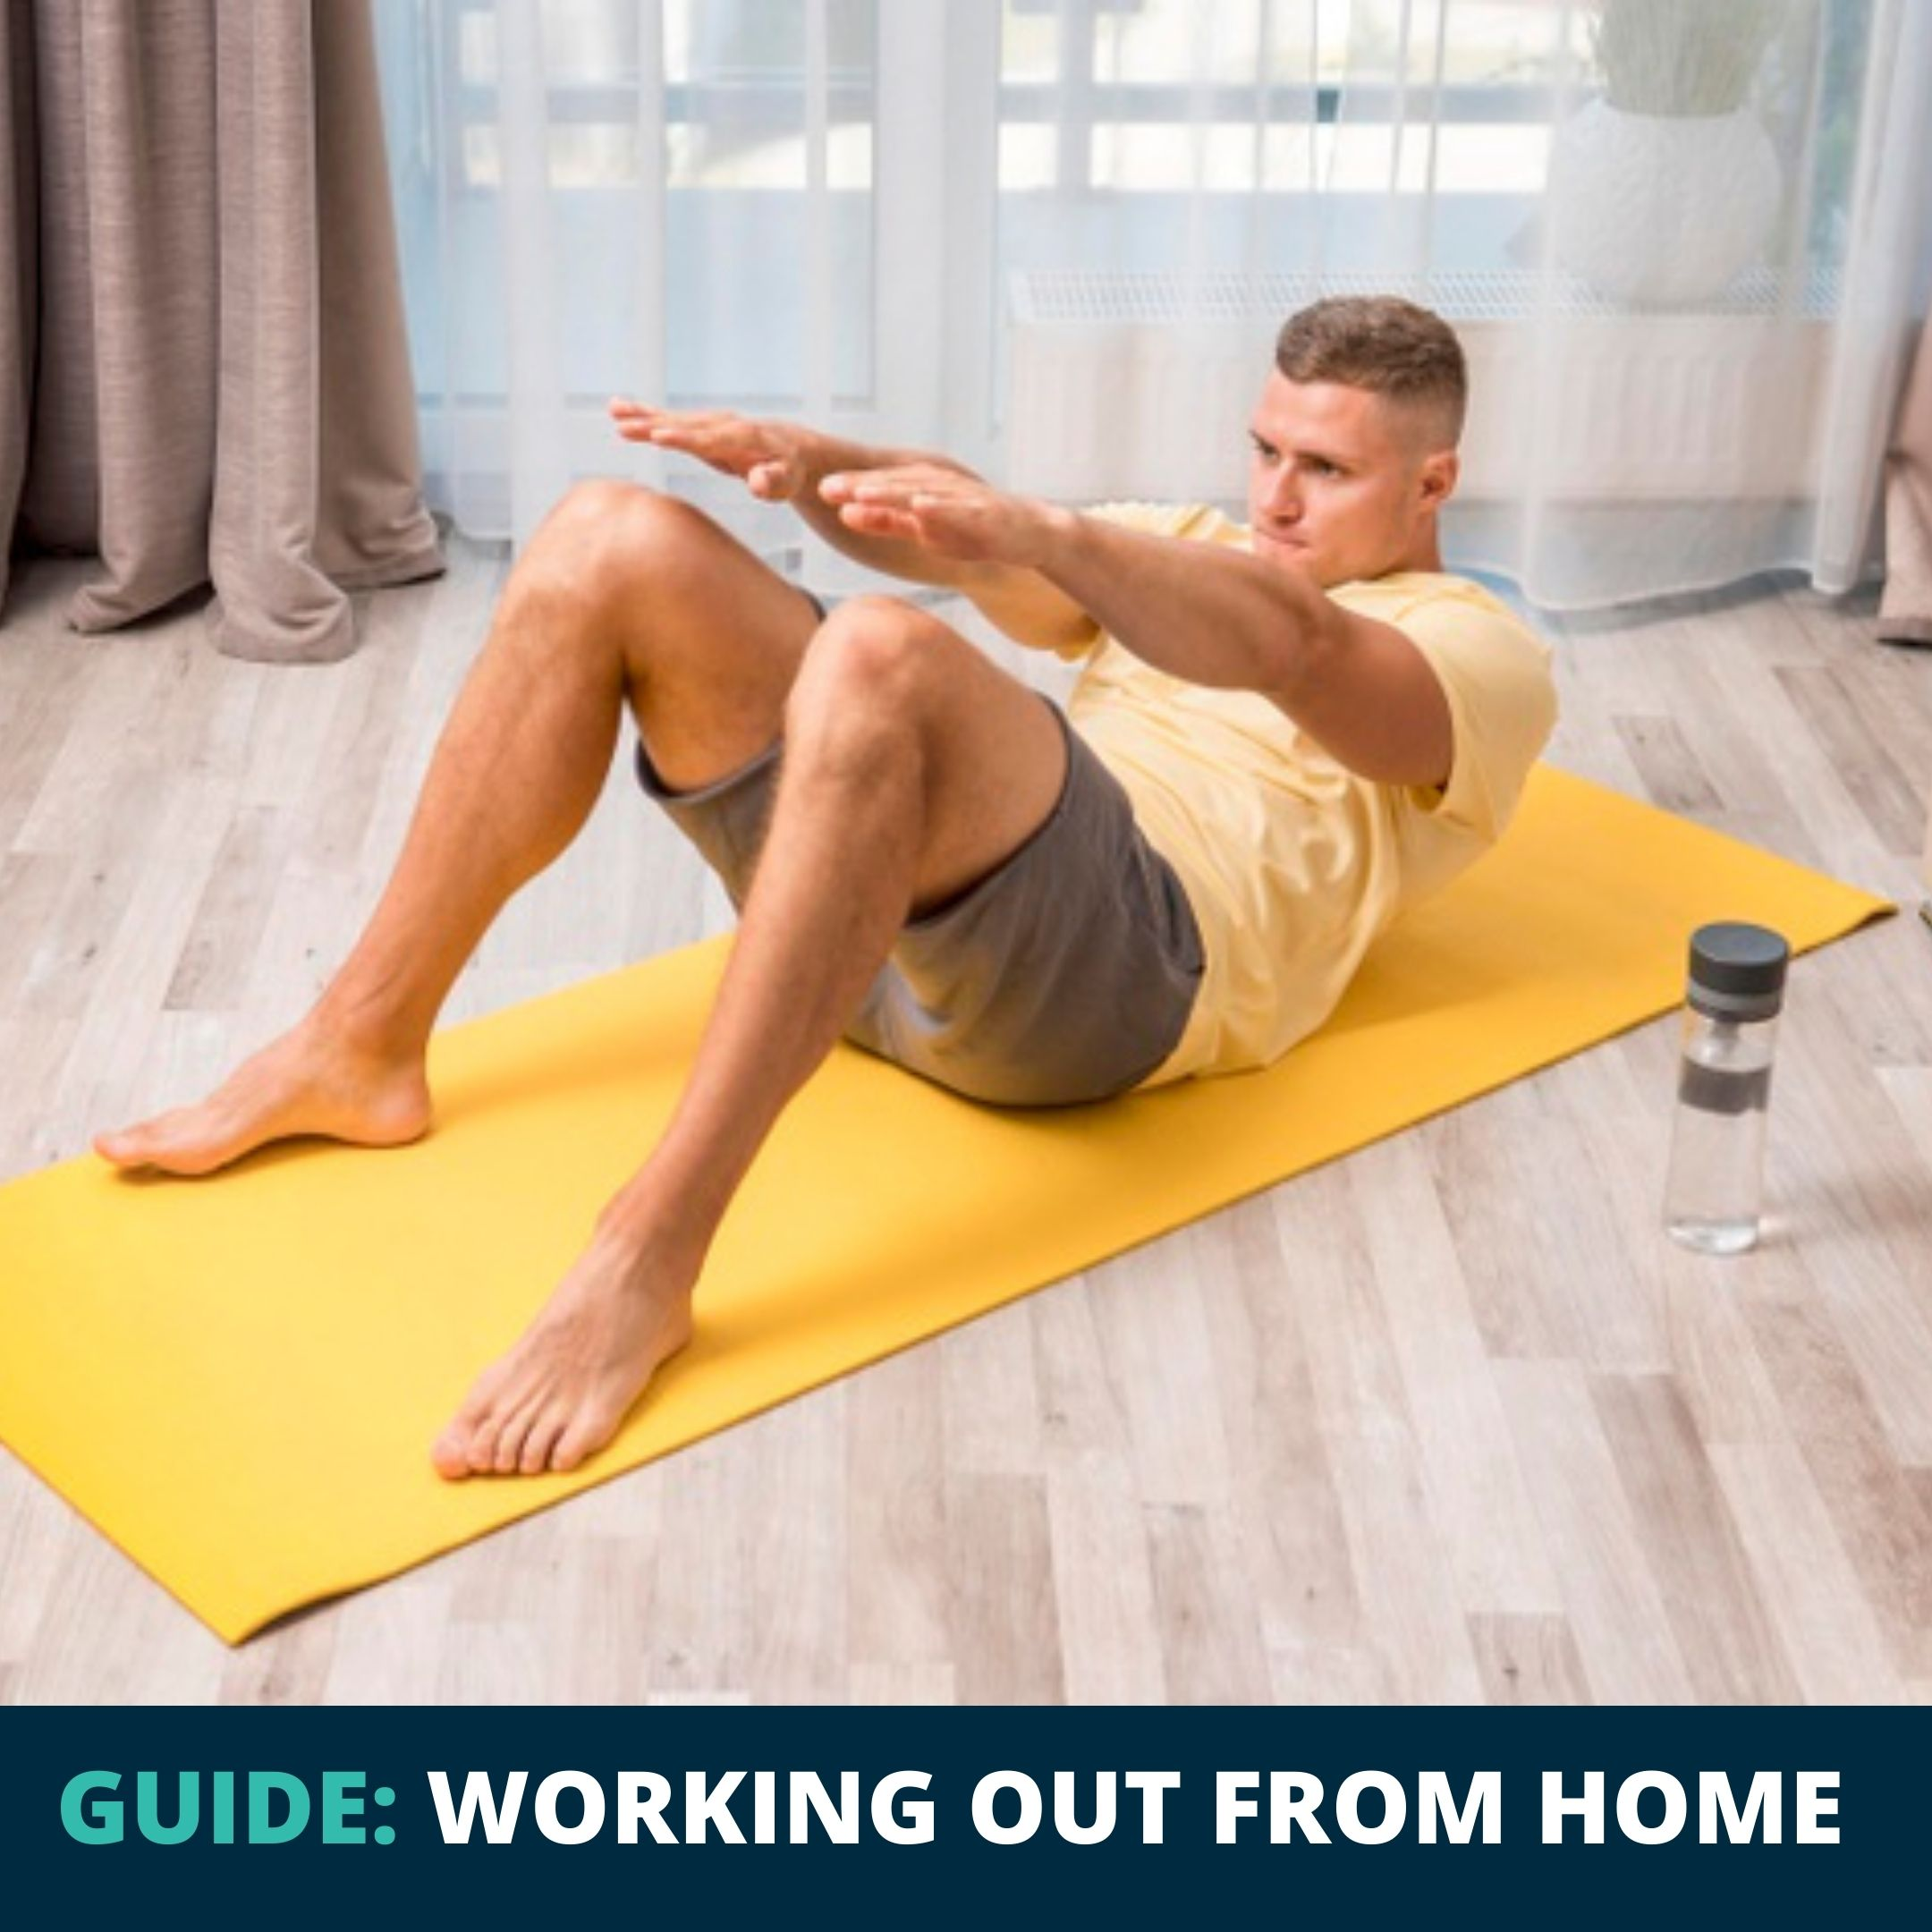 GUIDE: WORKING OUT FROM HOME